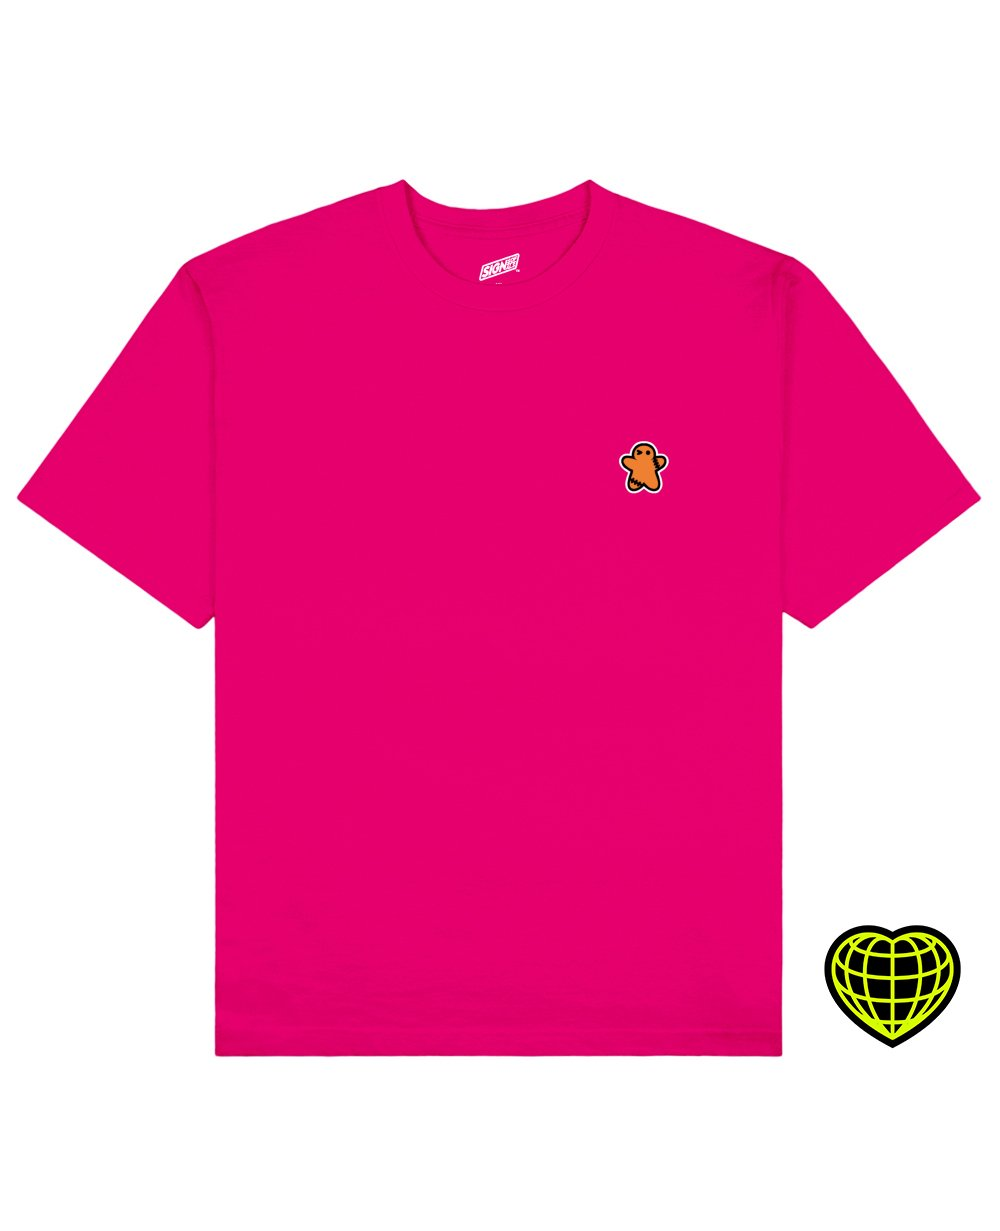 The Biscuit man Print T-shirt in Fresh Pink - T-Shirts - Signs of Signals - BRANMA